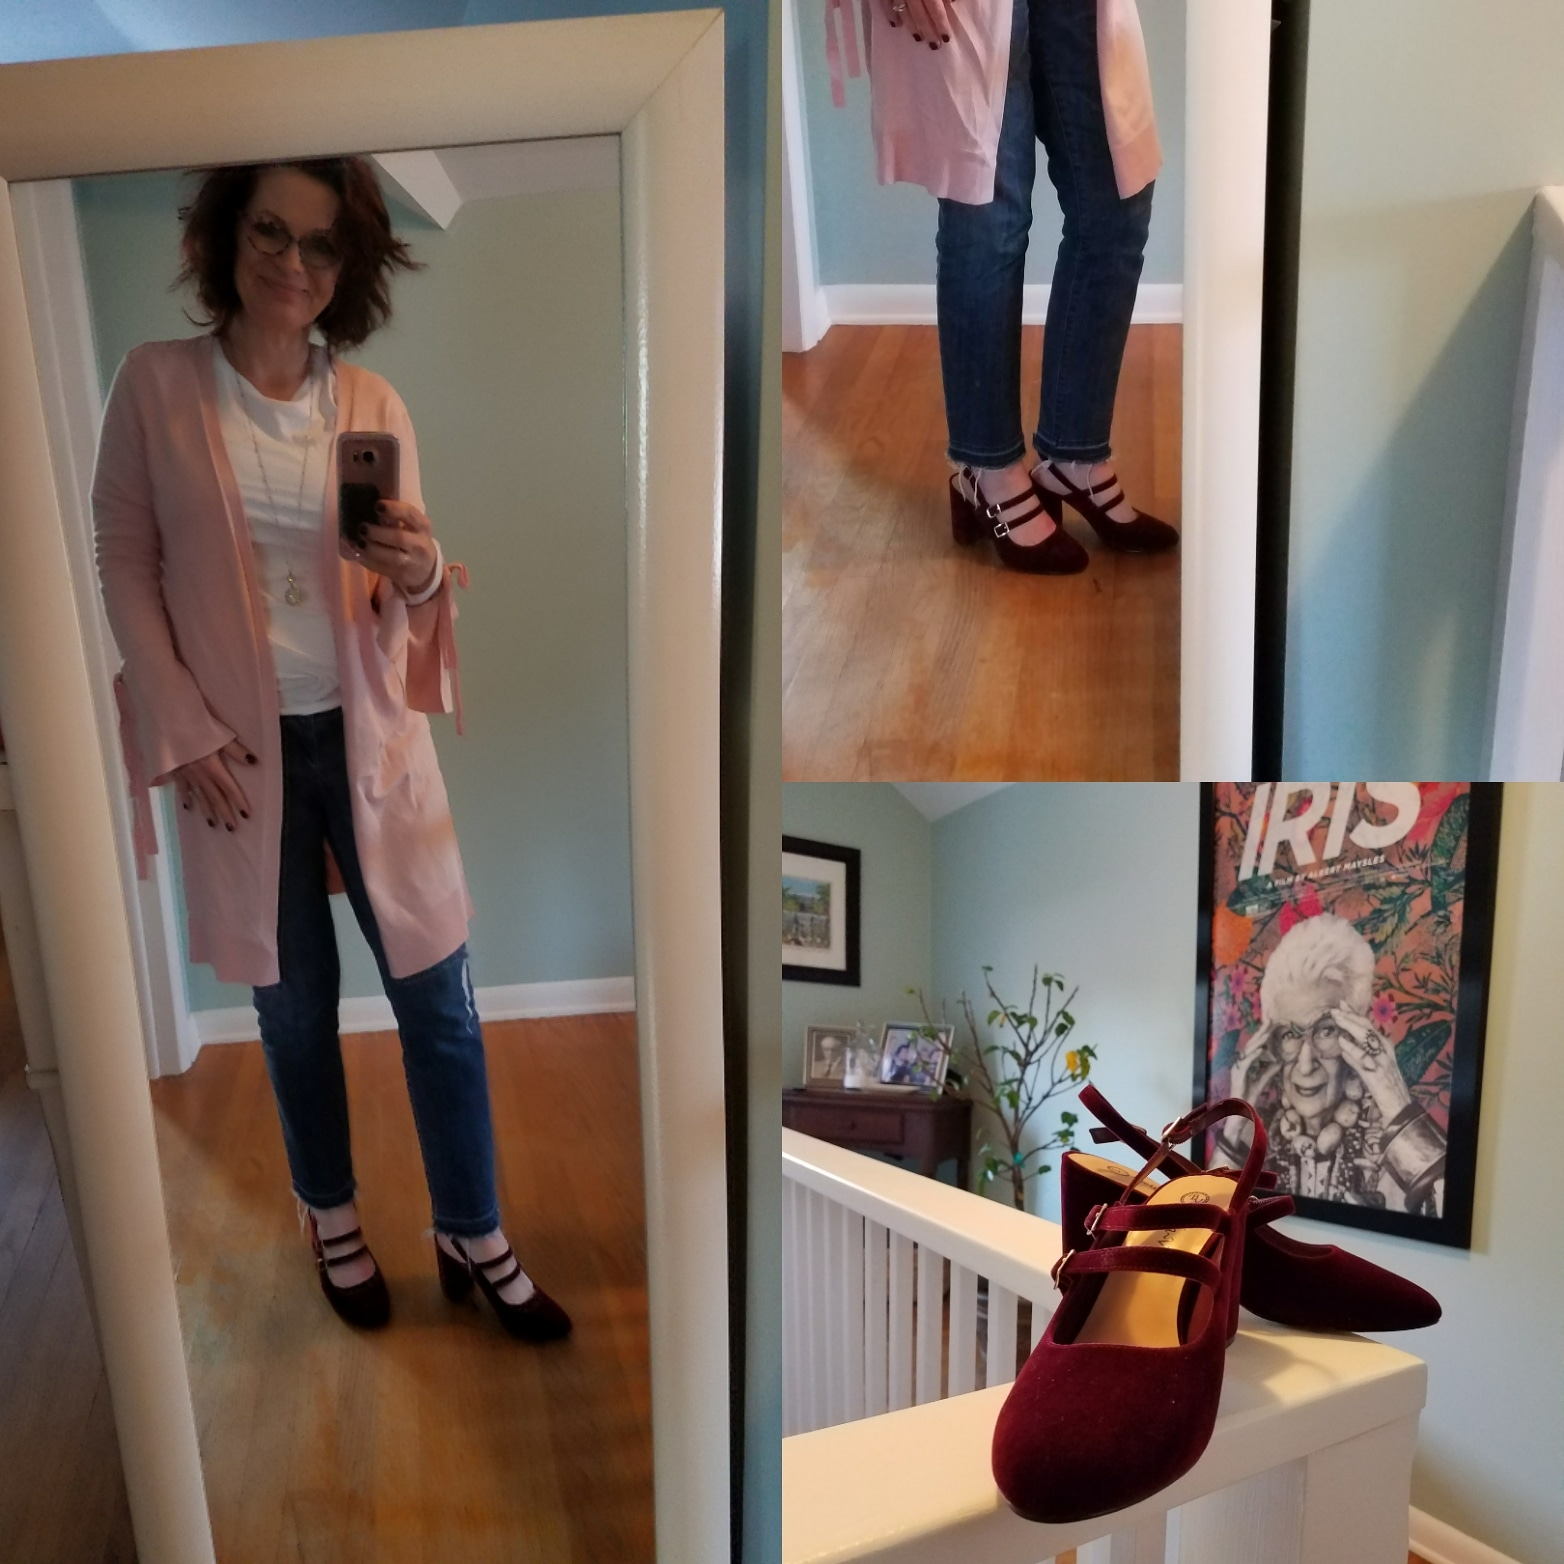 There was finally a run of a few days where I could wear my new shoes - I love the color combo of the shoes with the soft pink cardigan. Because the cardigan is longer I am comfortable pairing it with a skinny jean.